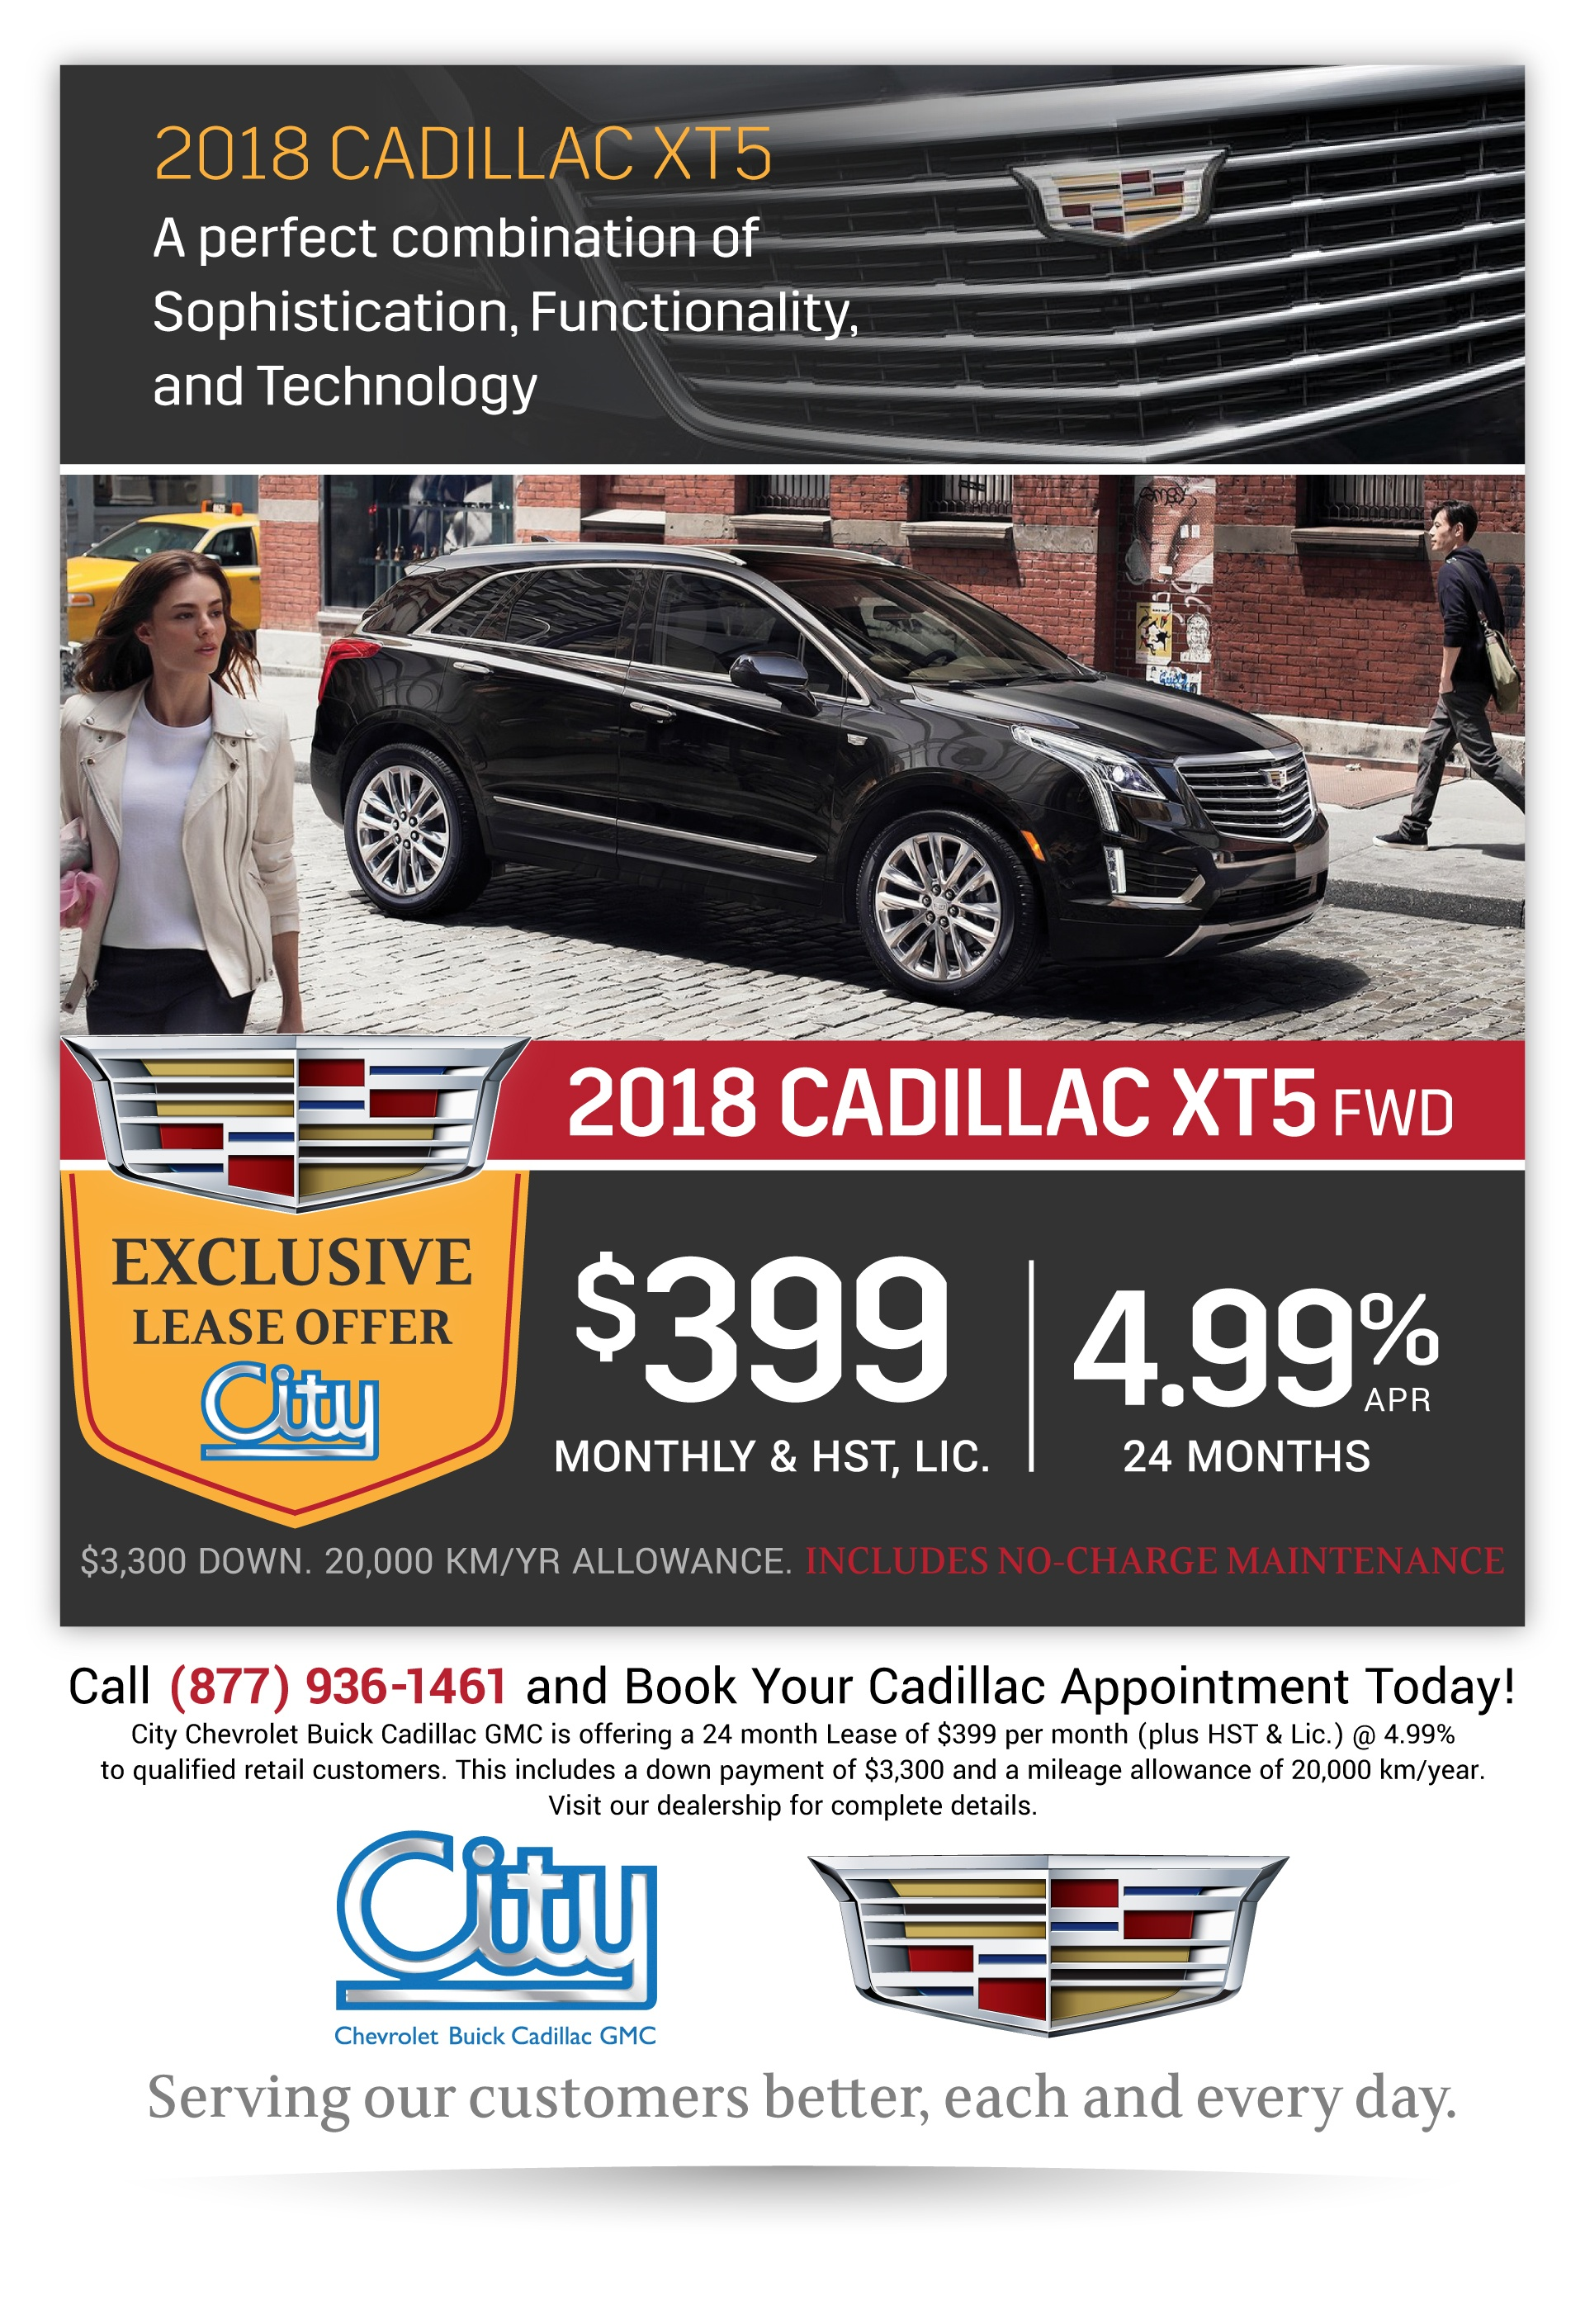 Cadillac XT5 Special Lease Offer